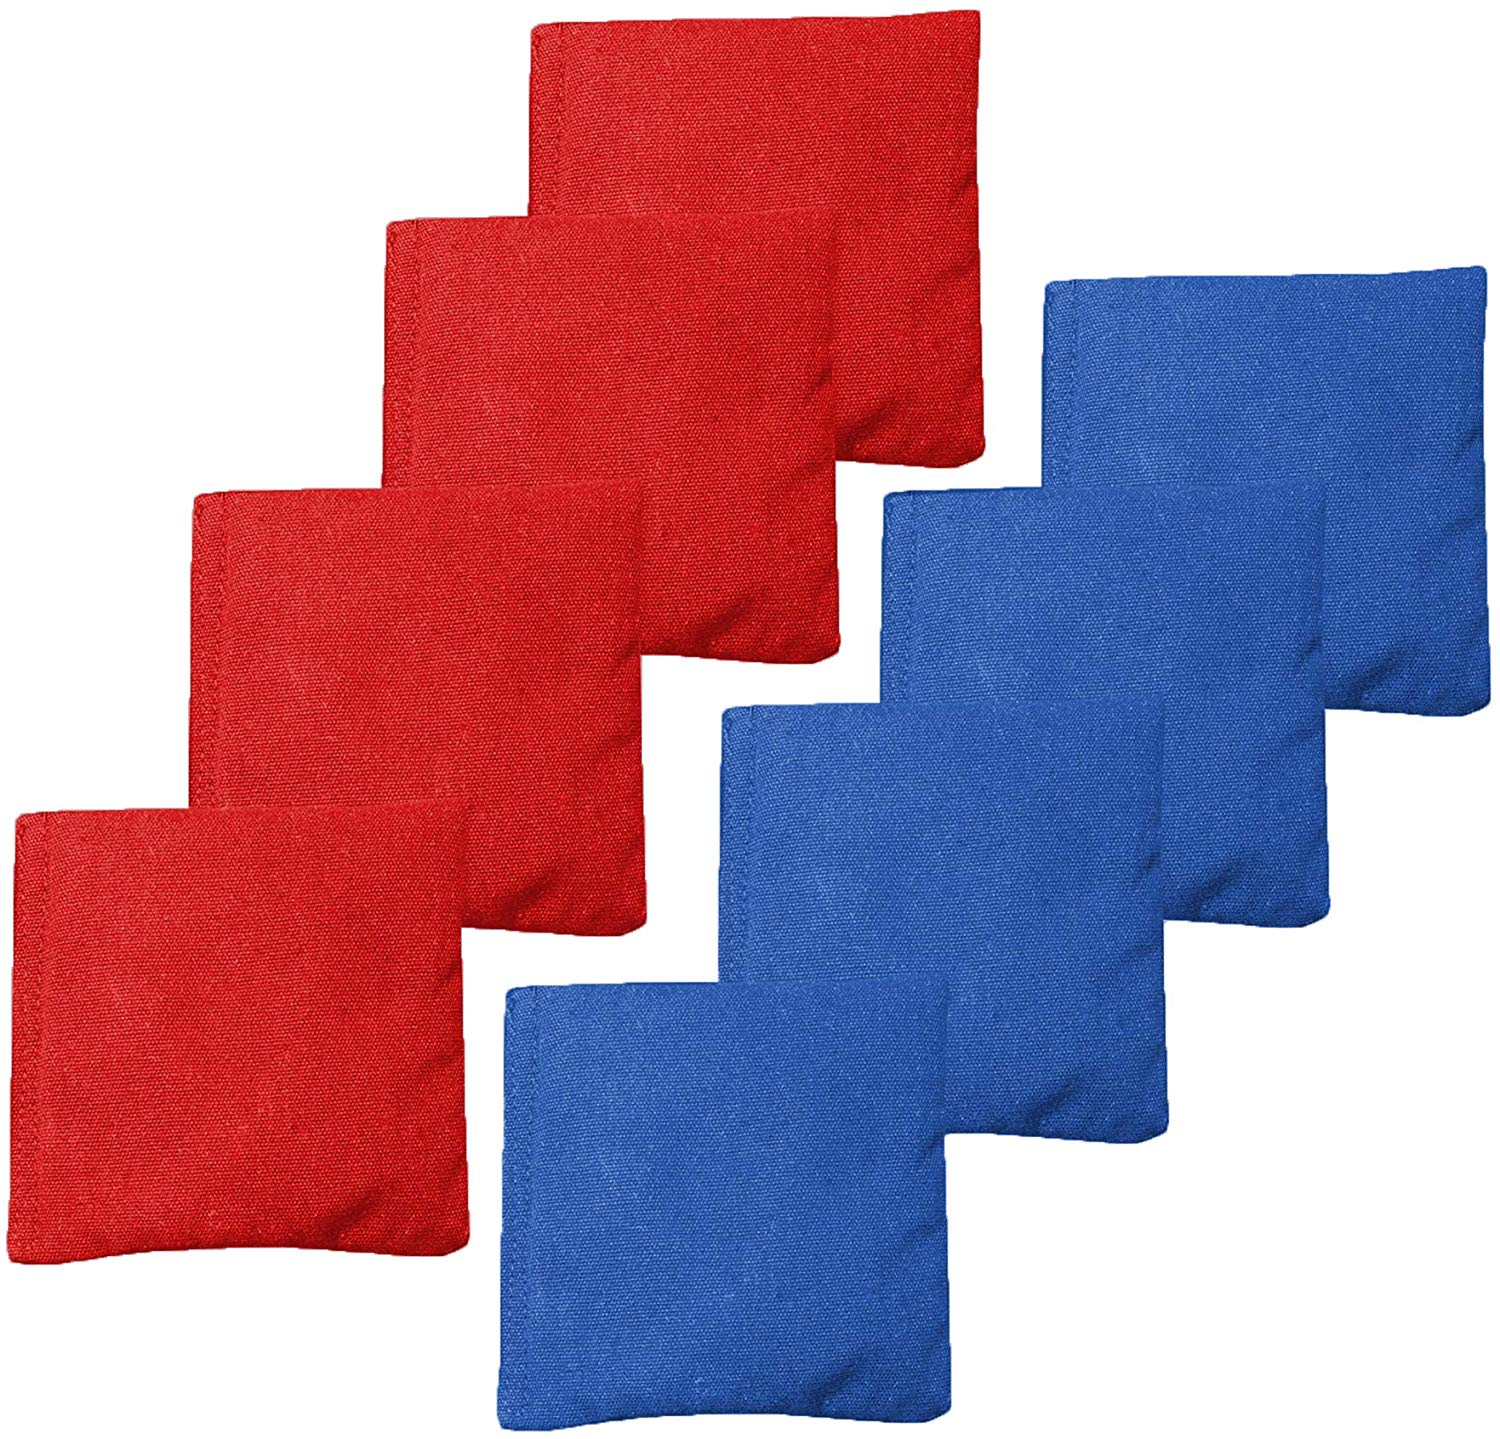 Corn Filled Cornhole Bags Regulation Size /& Weight Set of 8 Duck Cloth Bean Bags for Corn Hole Game